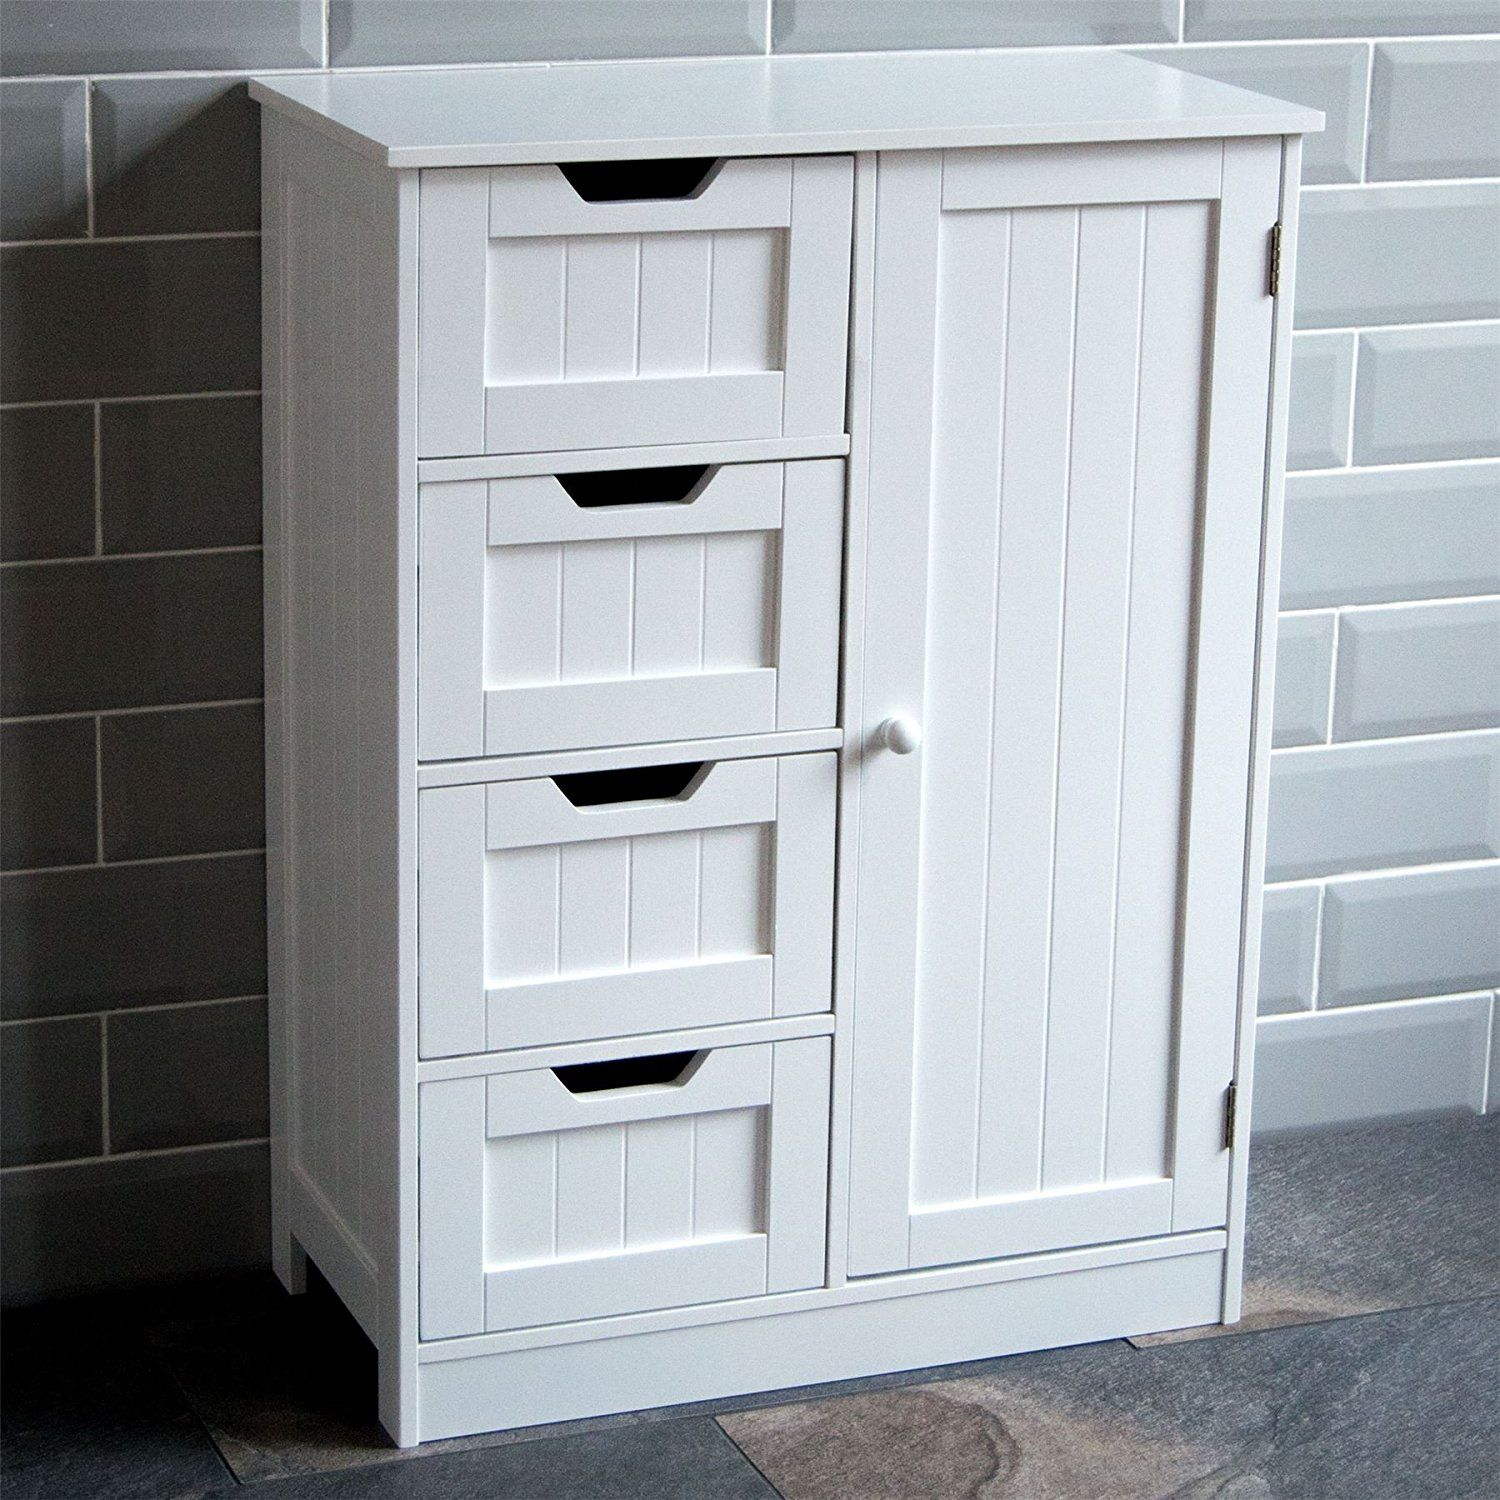 Tall Boy Storage Cabinet White Wooden Cupboard Bathroom Unit